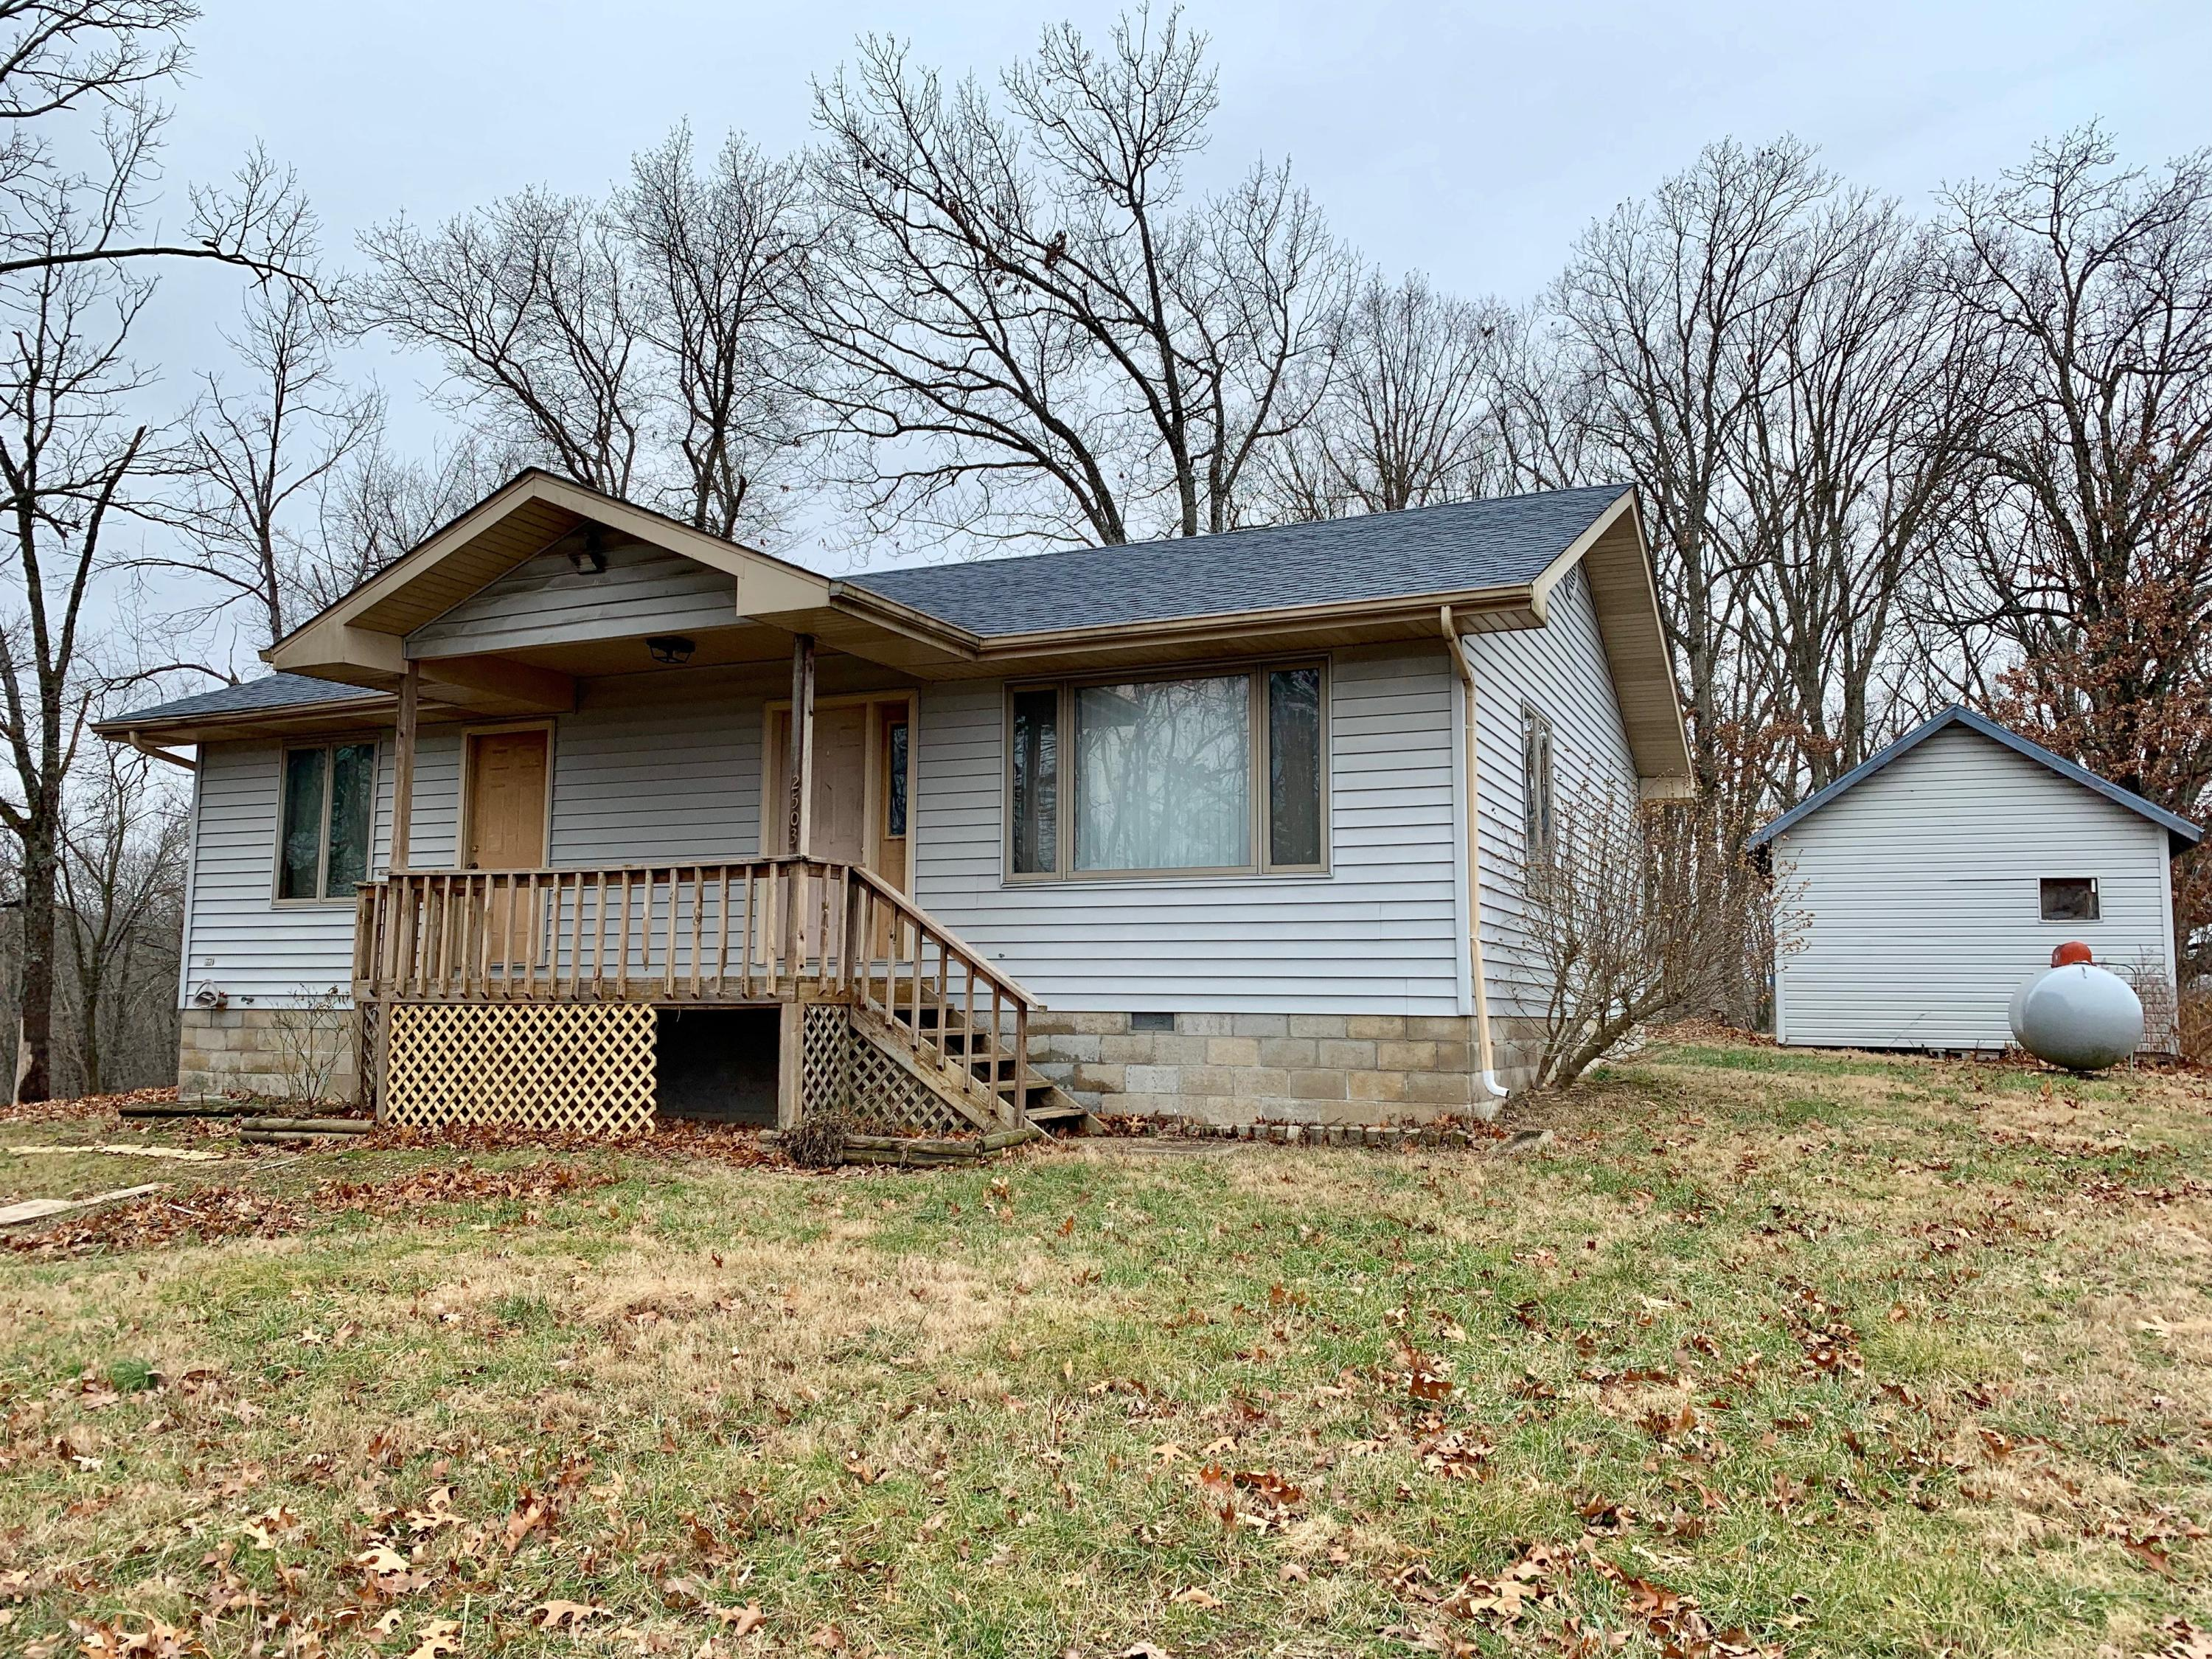 2503 Us-160 Walnut Shade, MO 65771